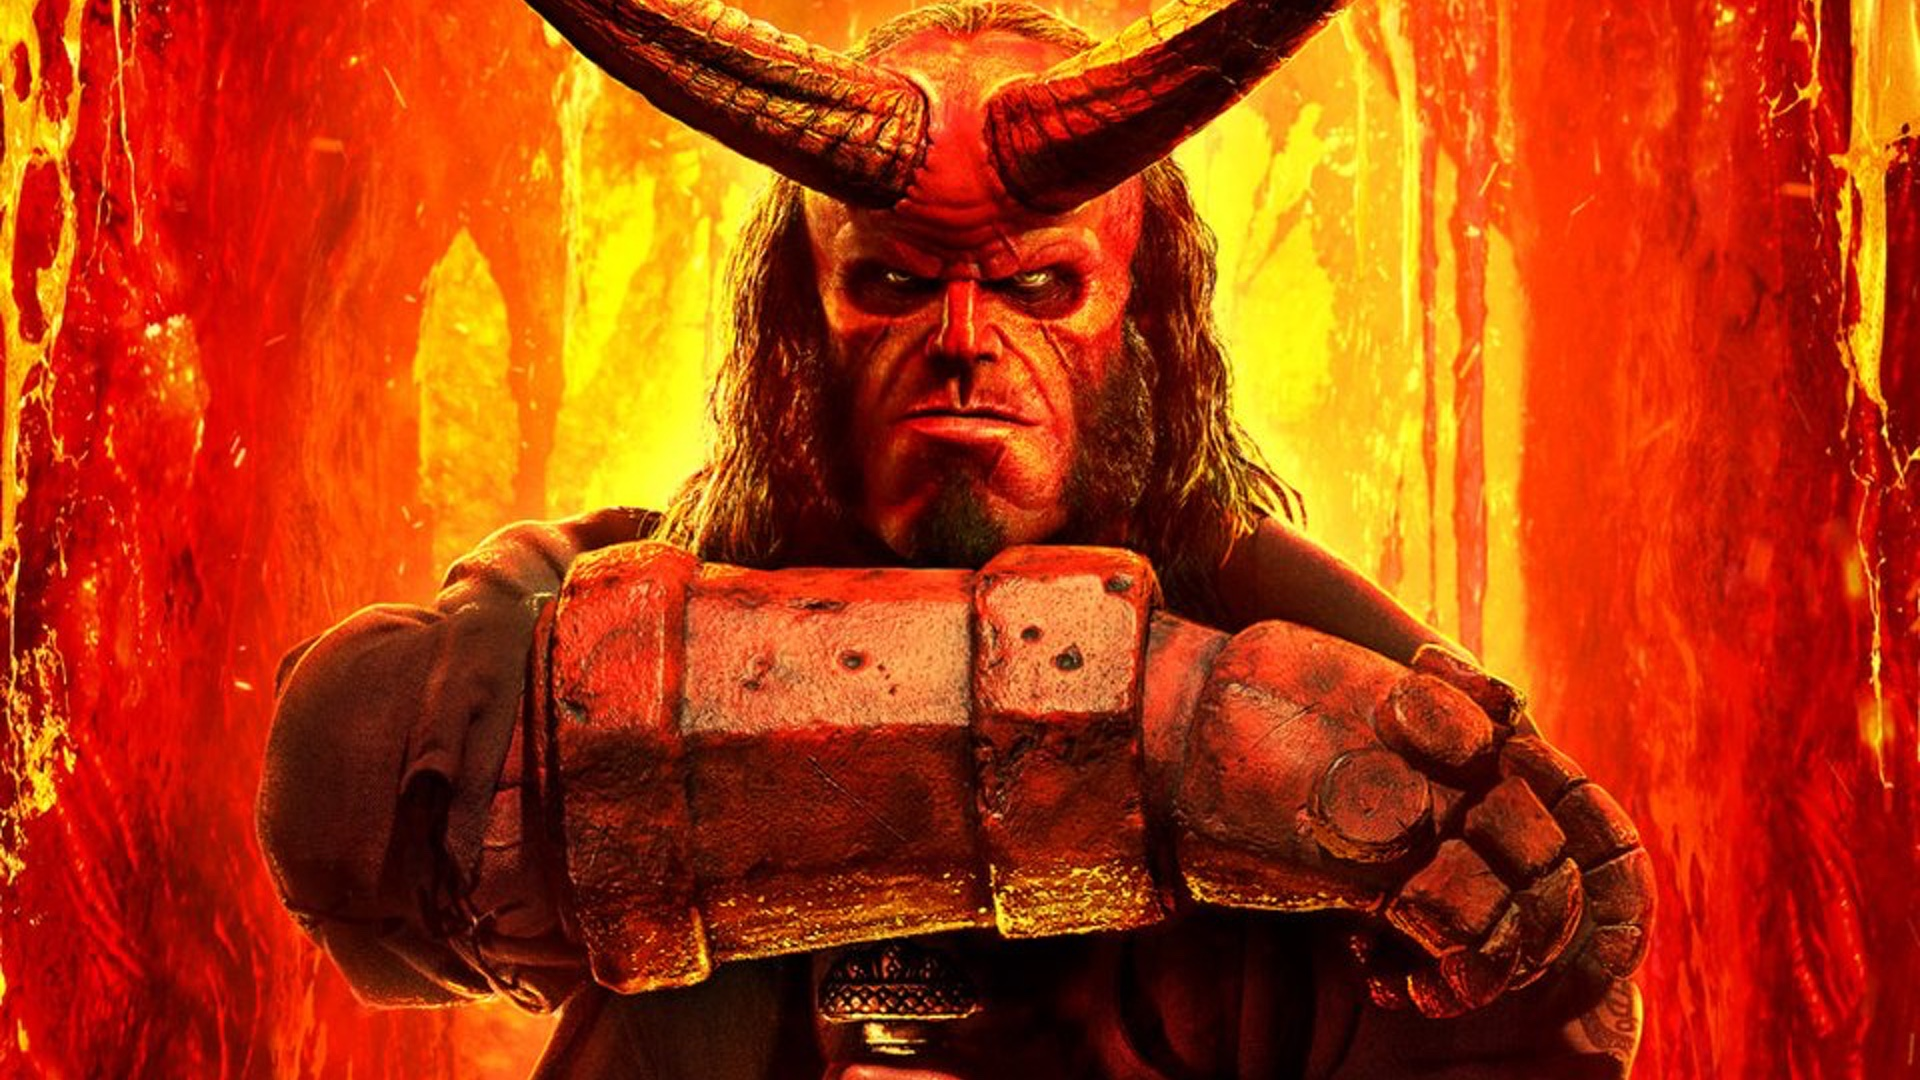 the-red-band-trailer-for-the-new-hellboy-film-has-dropped-social.jpg